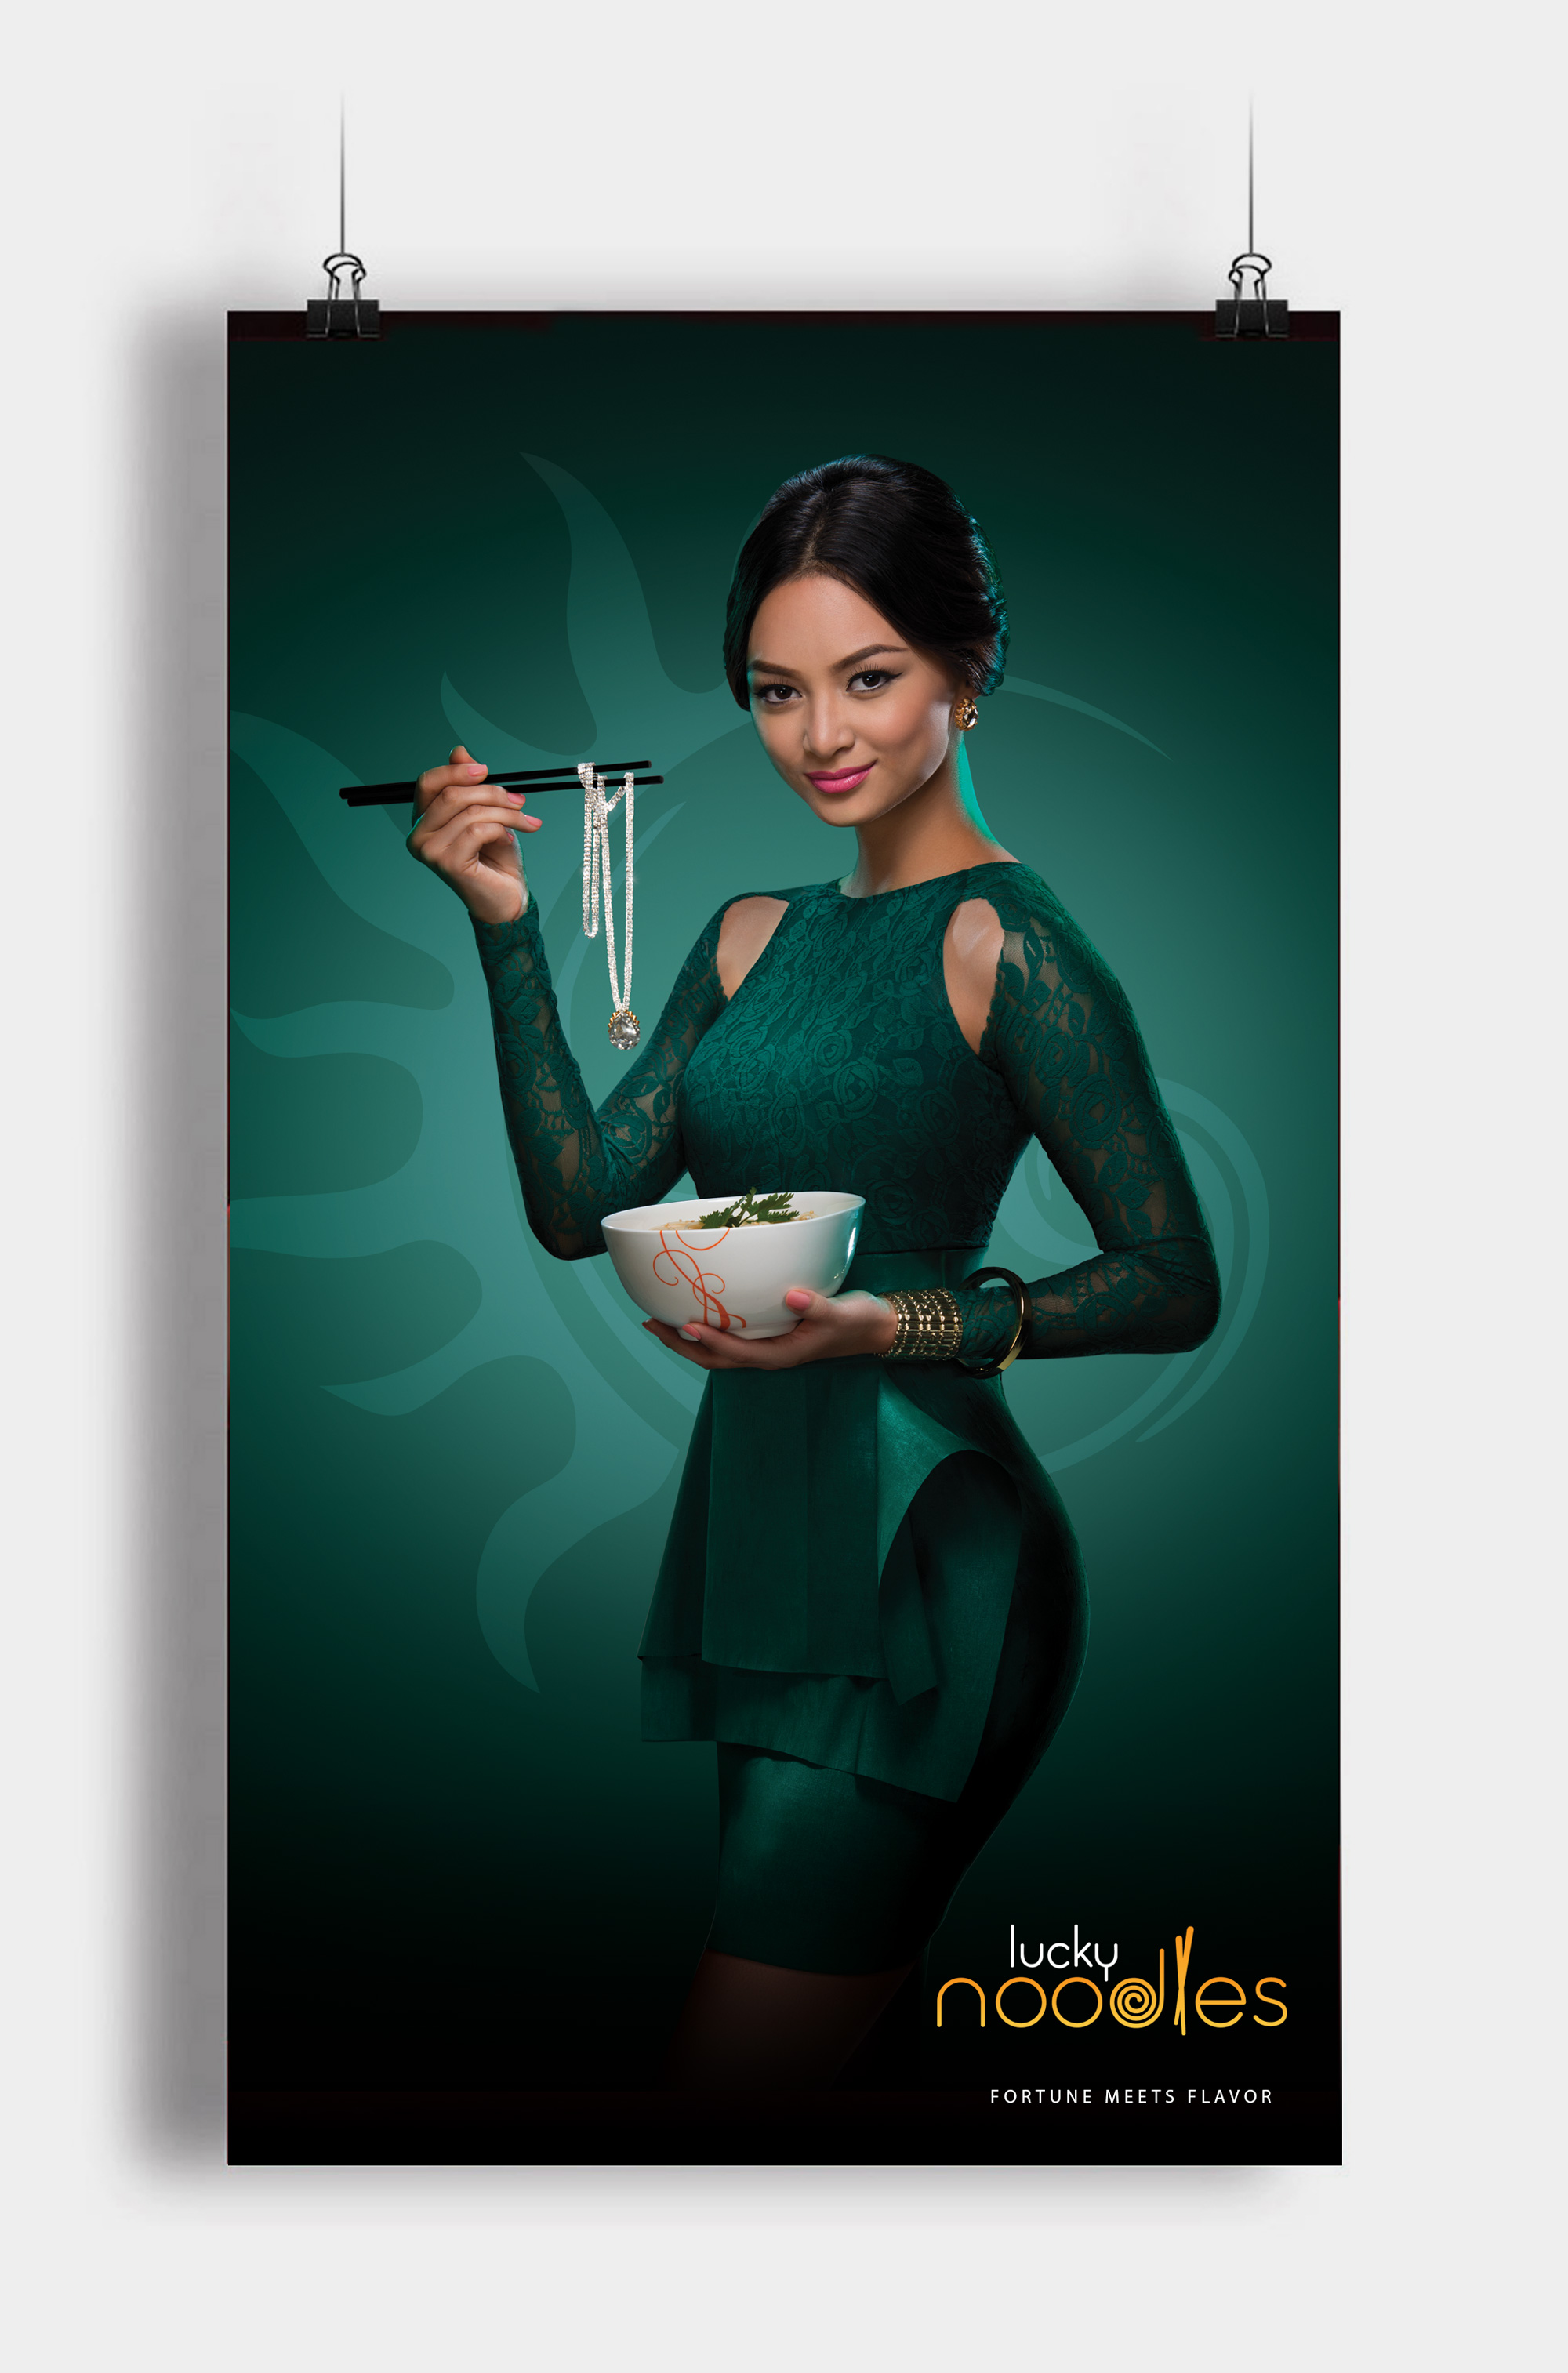 Lucky Noodles restaurant poster